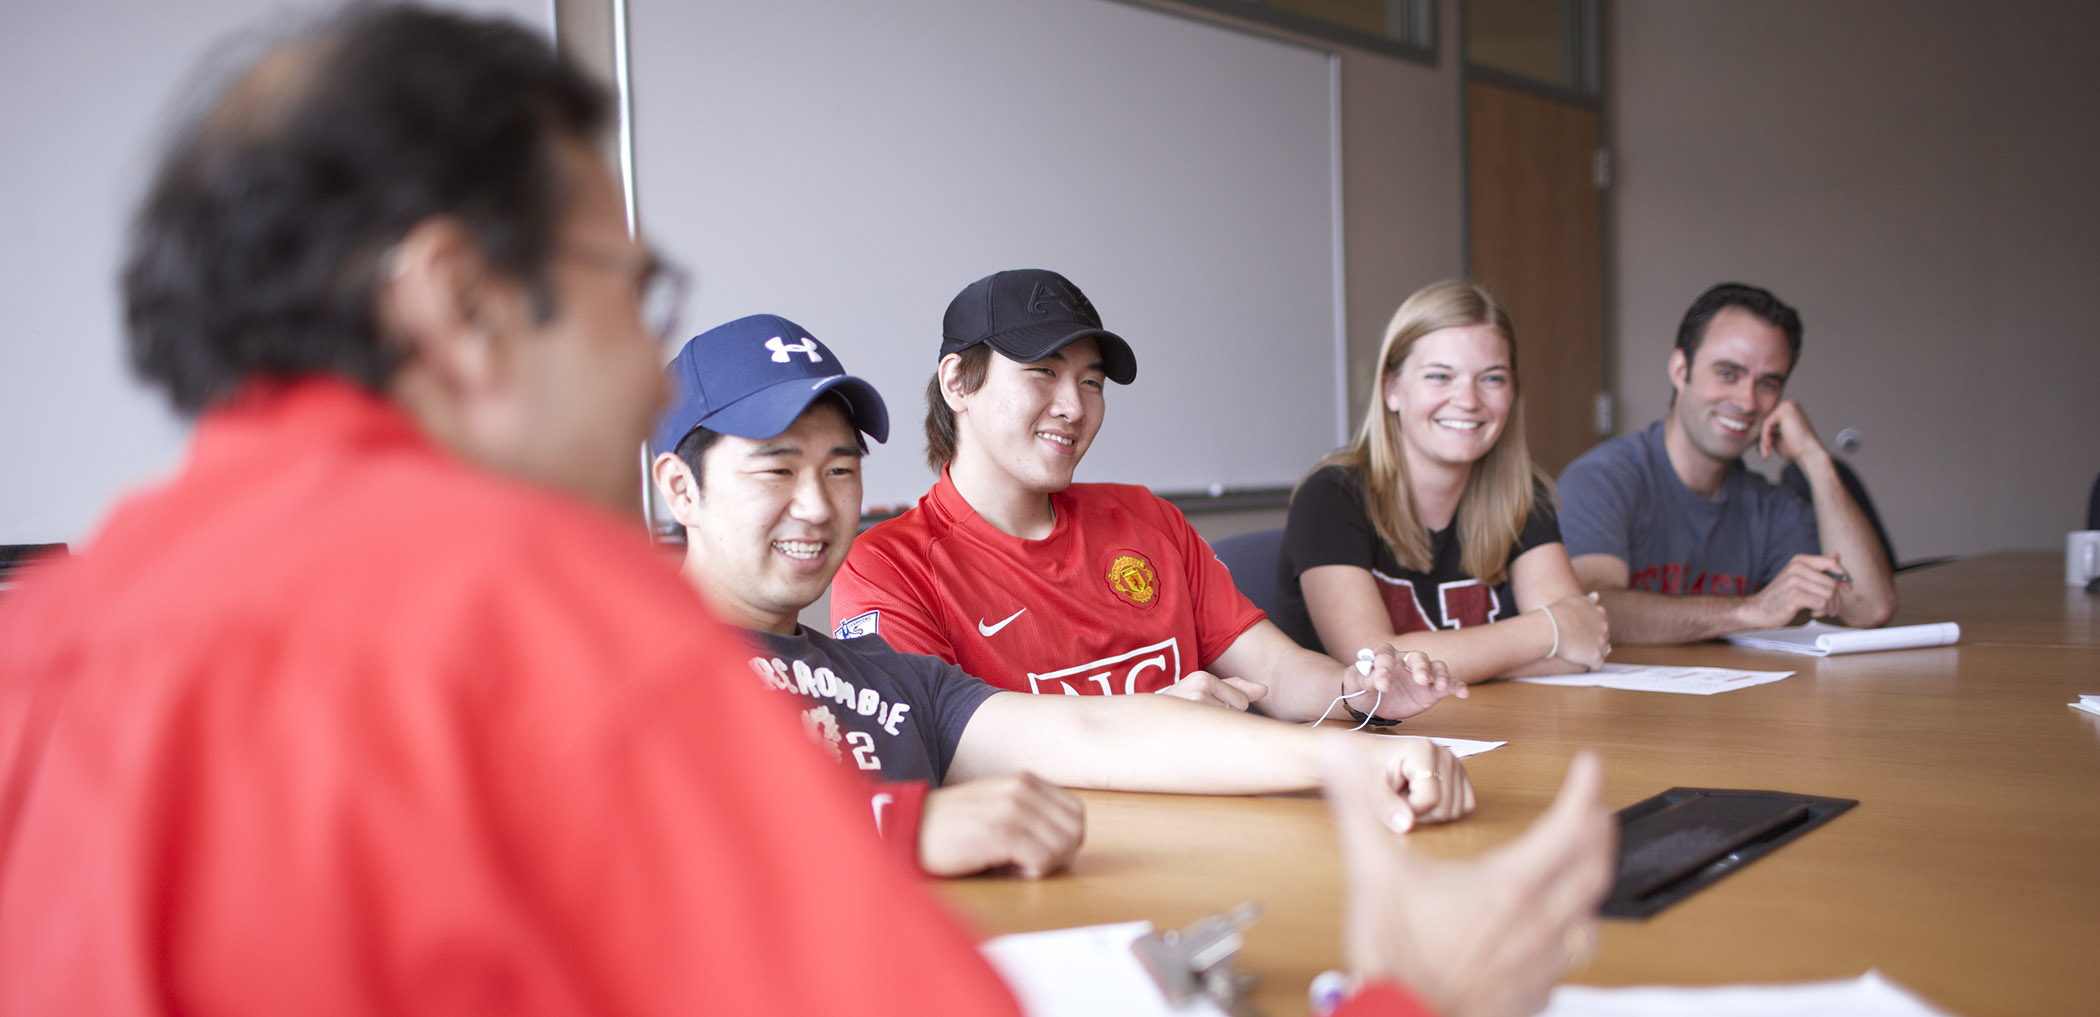 Faculty with smiling students